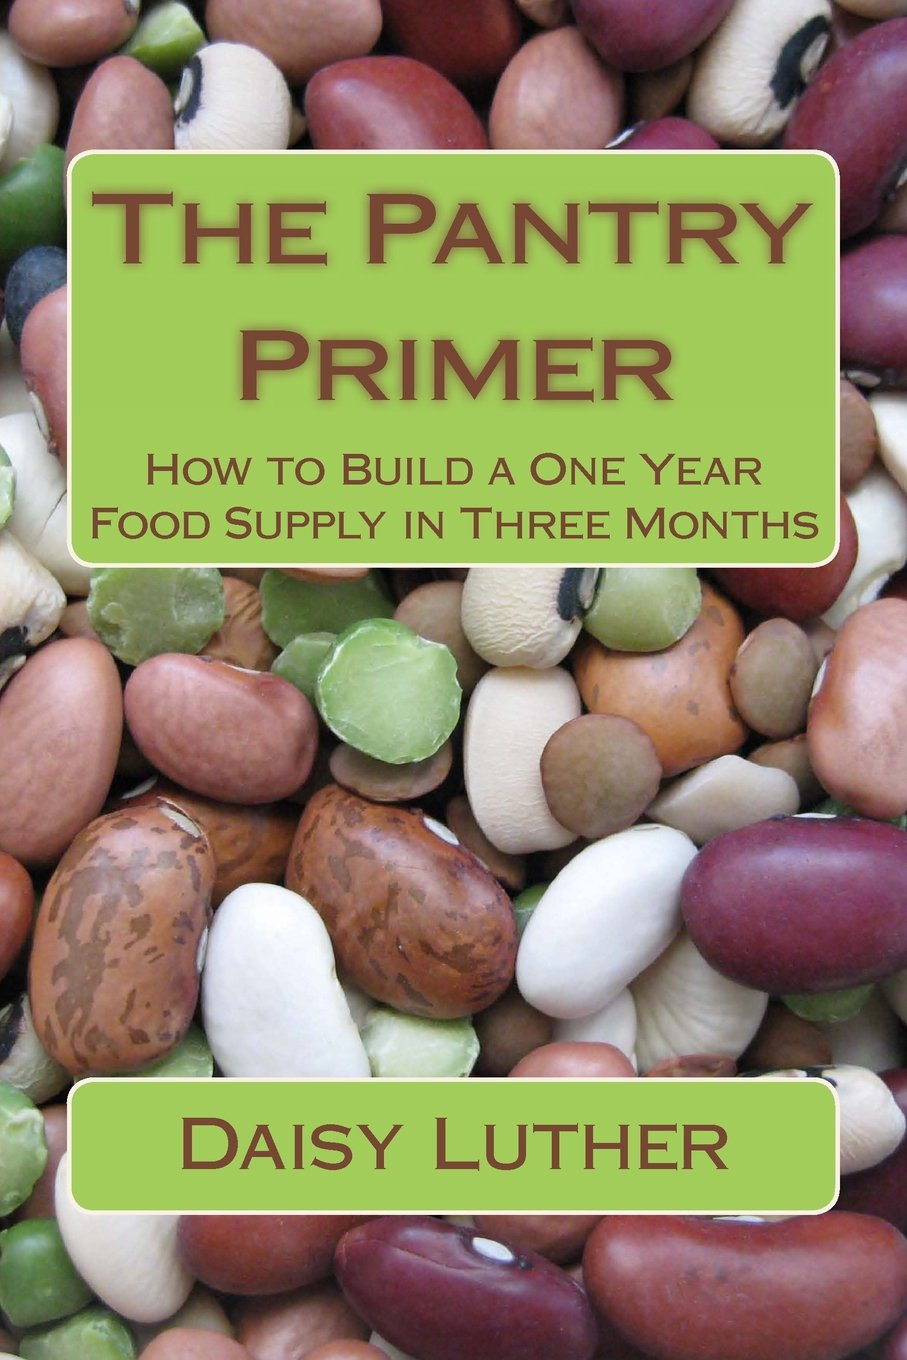 The Pantry Primer How to Build a One Year Food Supply in Three